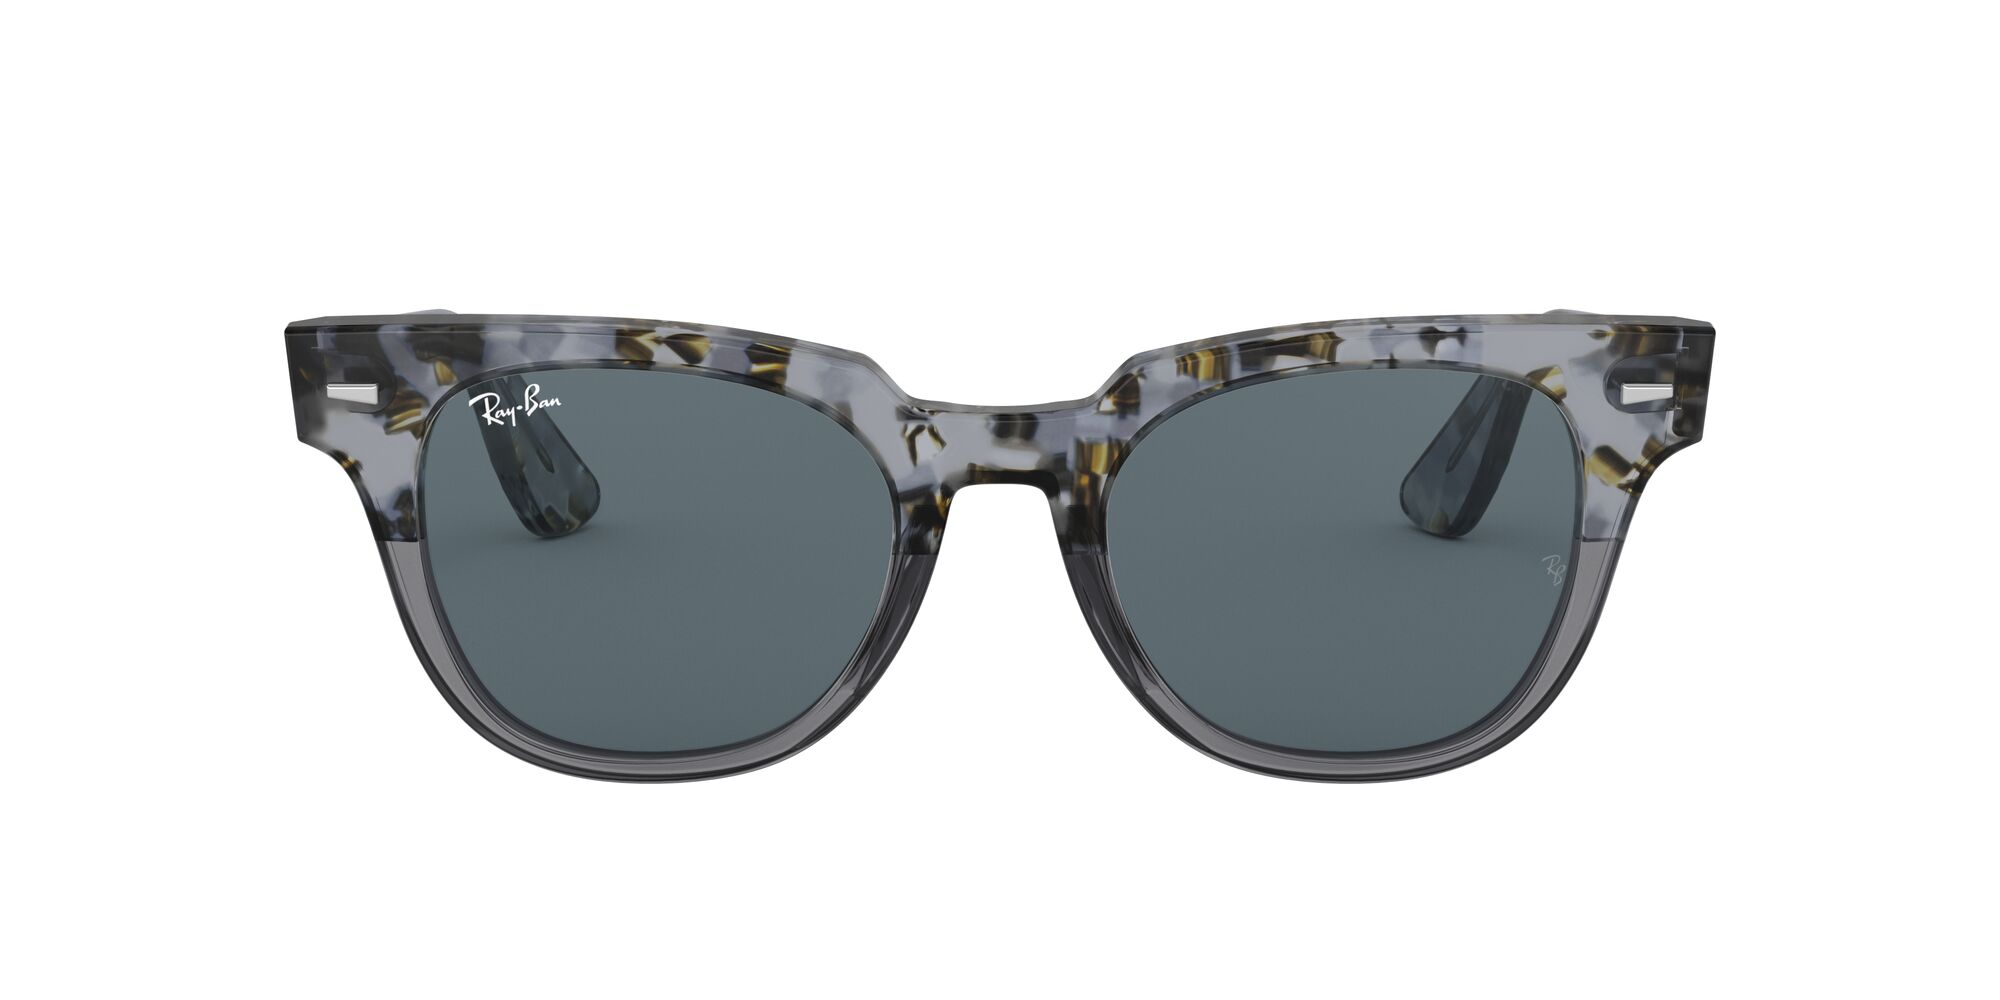 Front Ray-Ban Ray-Ban 0RB2168 1286R5 49/20 Bruin, Grijs/Blauw